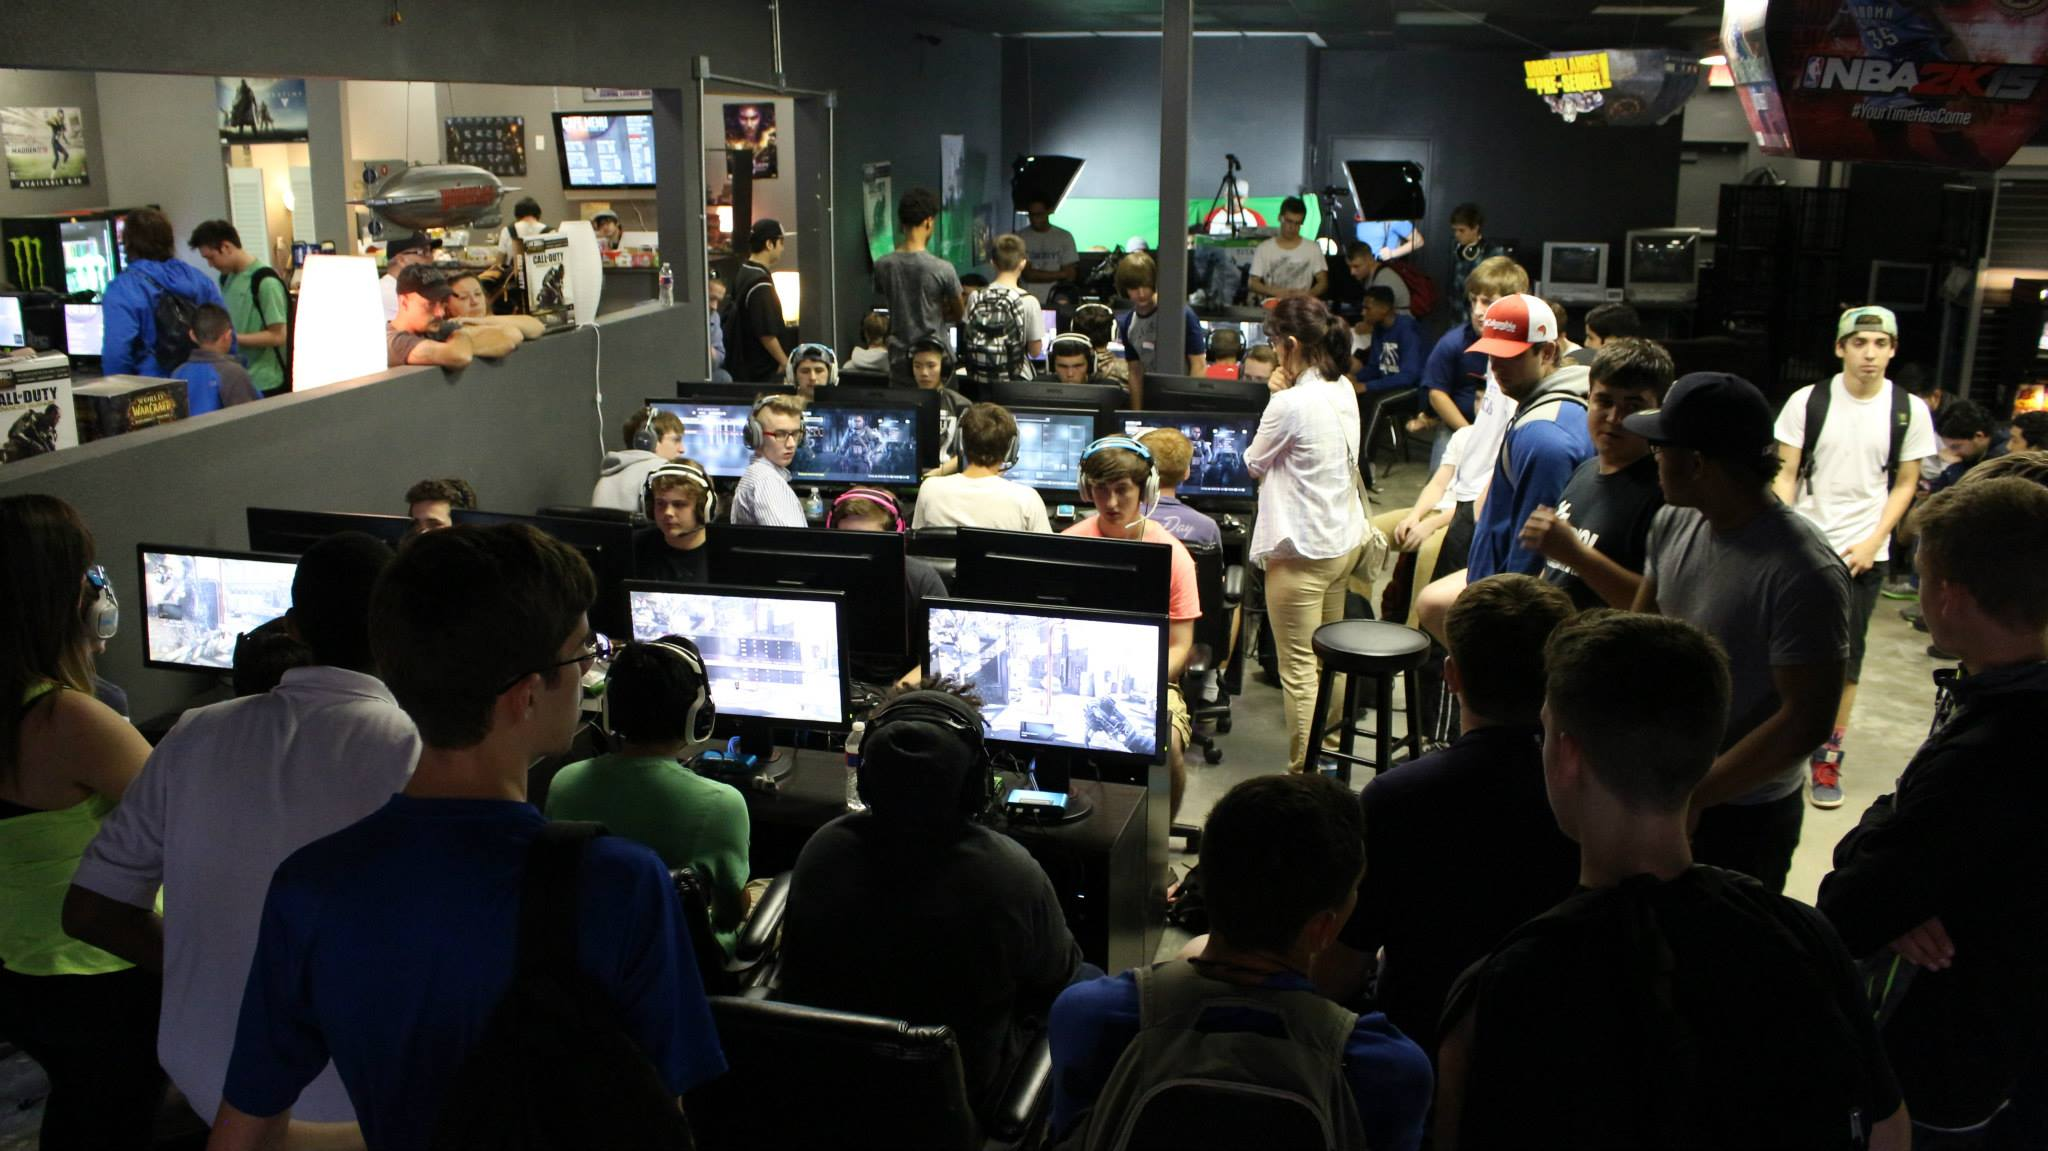 Verizon has partnered with Epic Gaming Lounge to host a series of eSports events open to all gamers